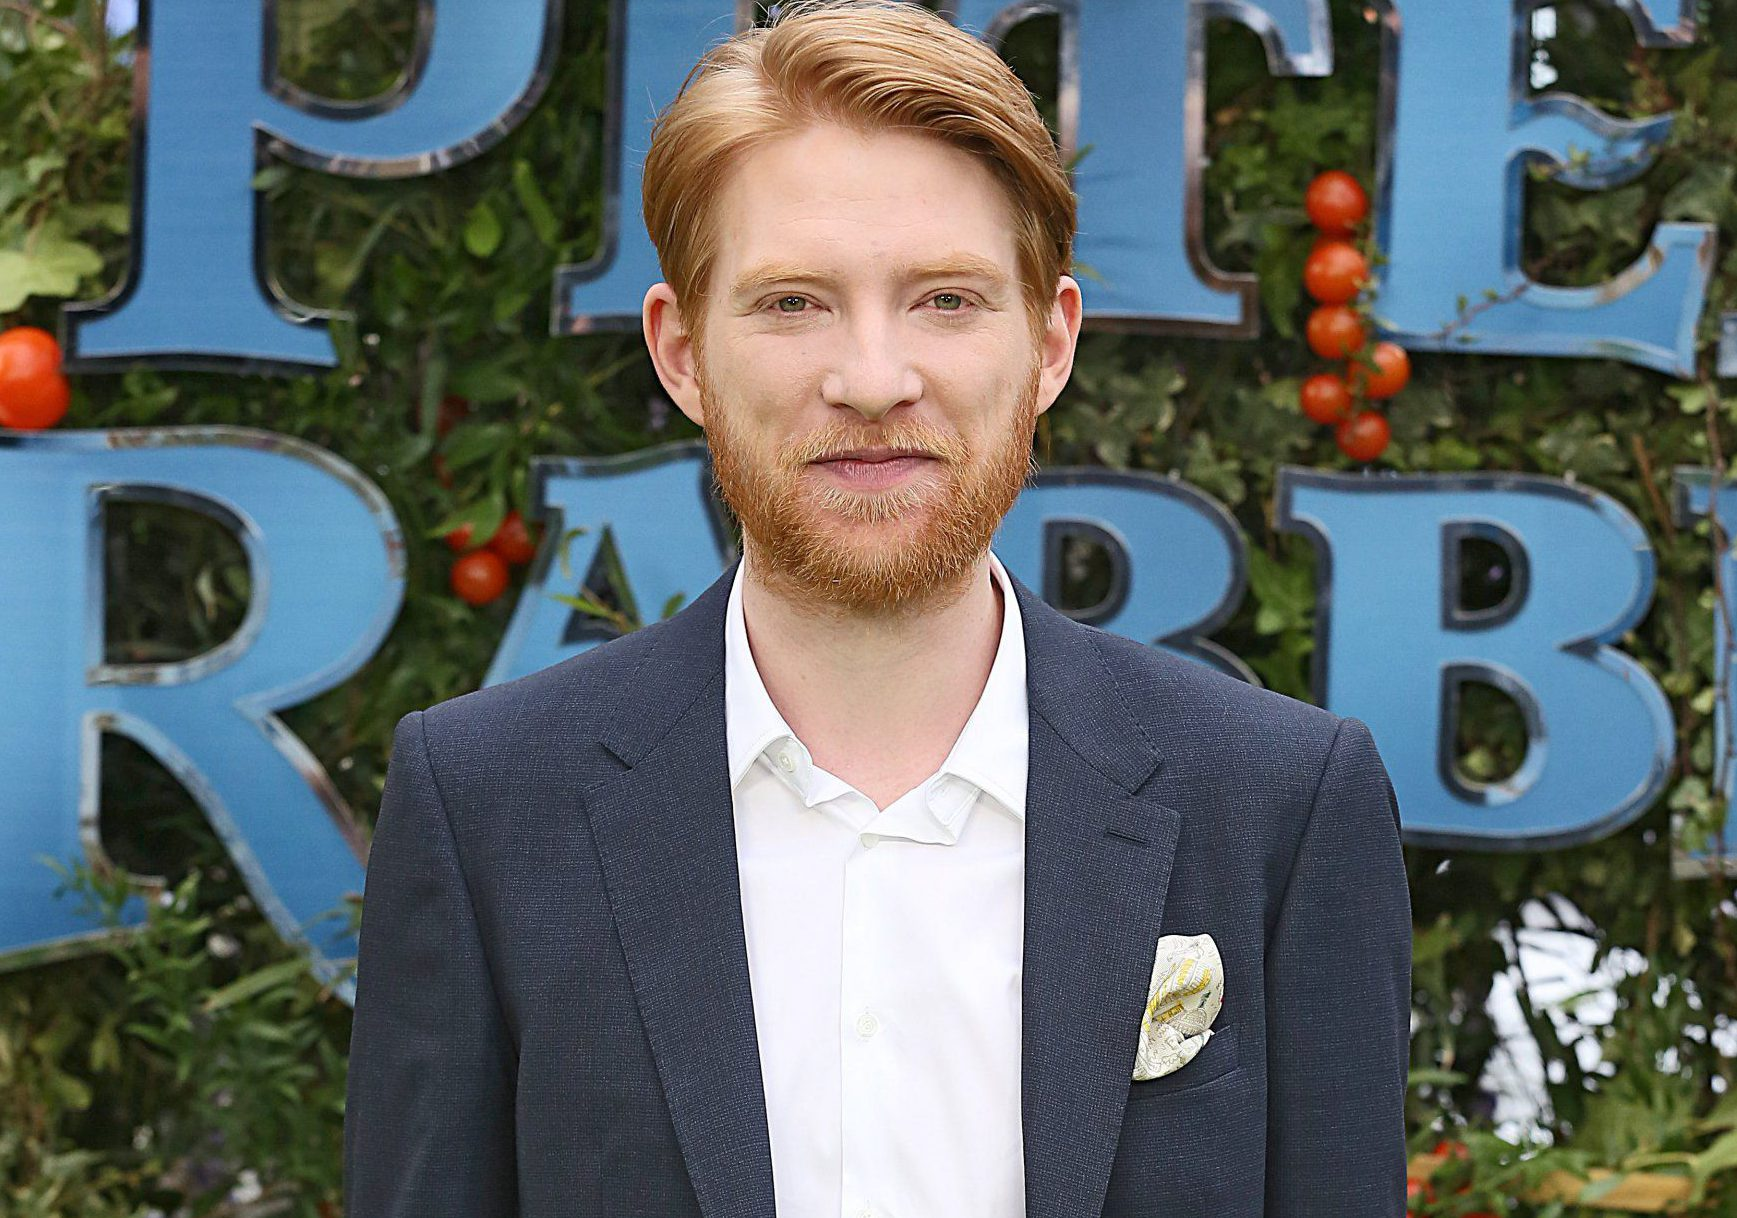 Domhnall Gleeson has 'no idea' if he'll be returning to Star Wars as he praises JJ Abrams